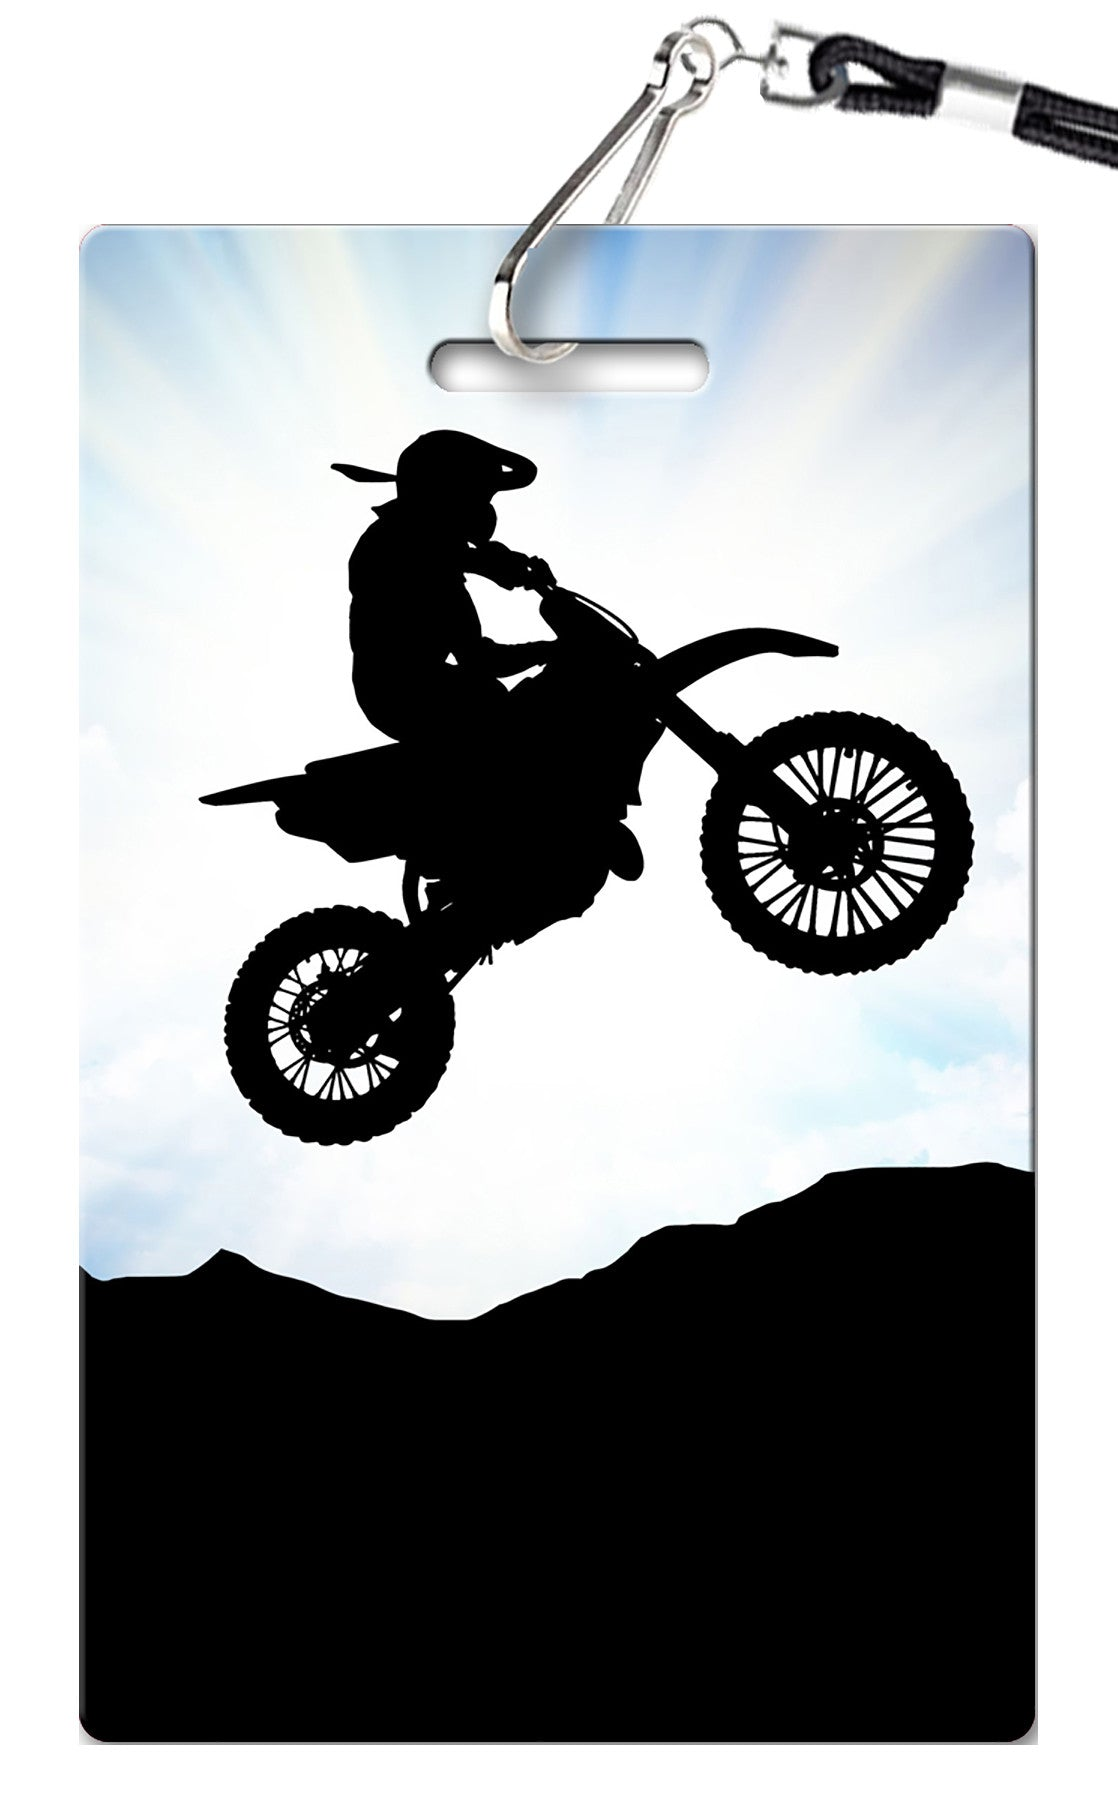 Dirt Bike Birthday Invitations - PVC Invites - VIP Birthday Invitations